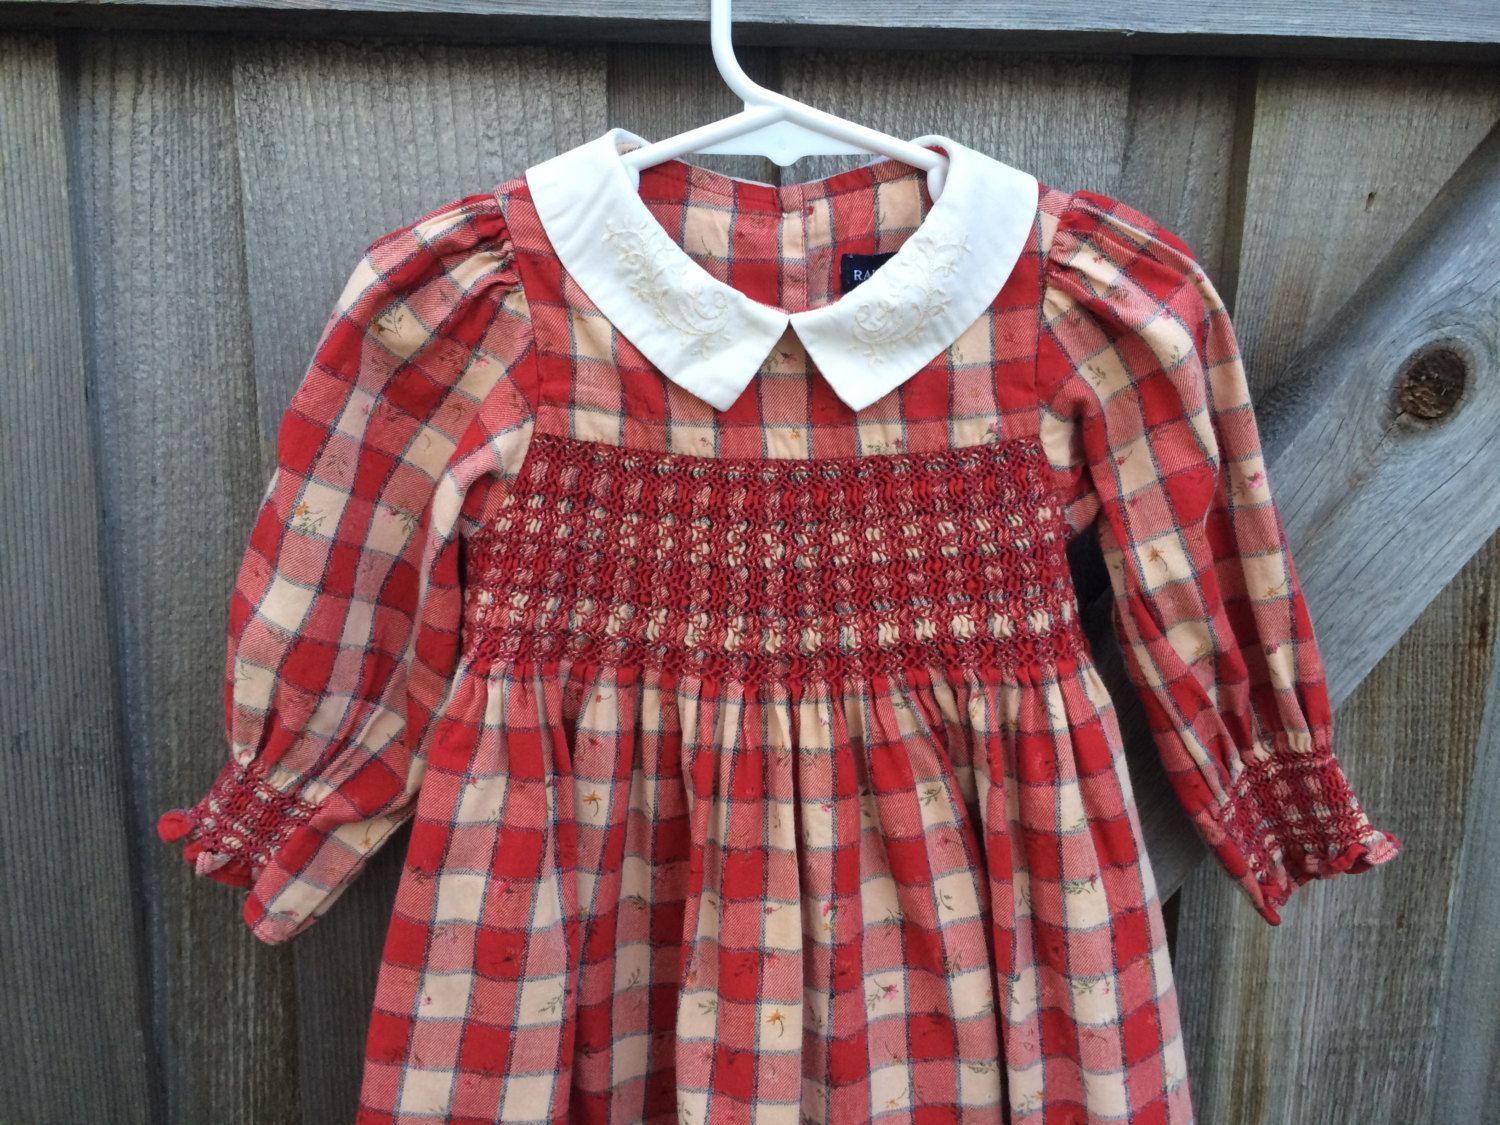 Flannel dress for women  s Flannel Dress  Months by lishyloo on Etsy  lishyloo